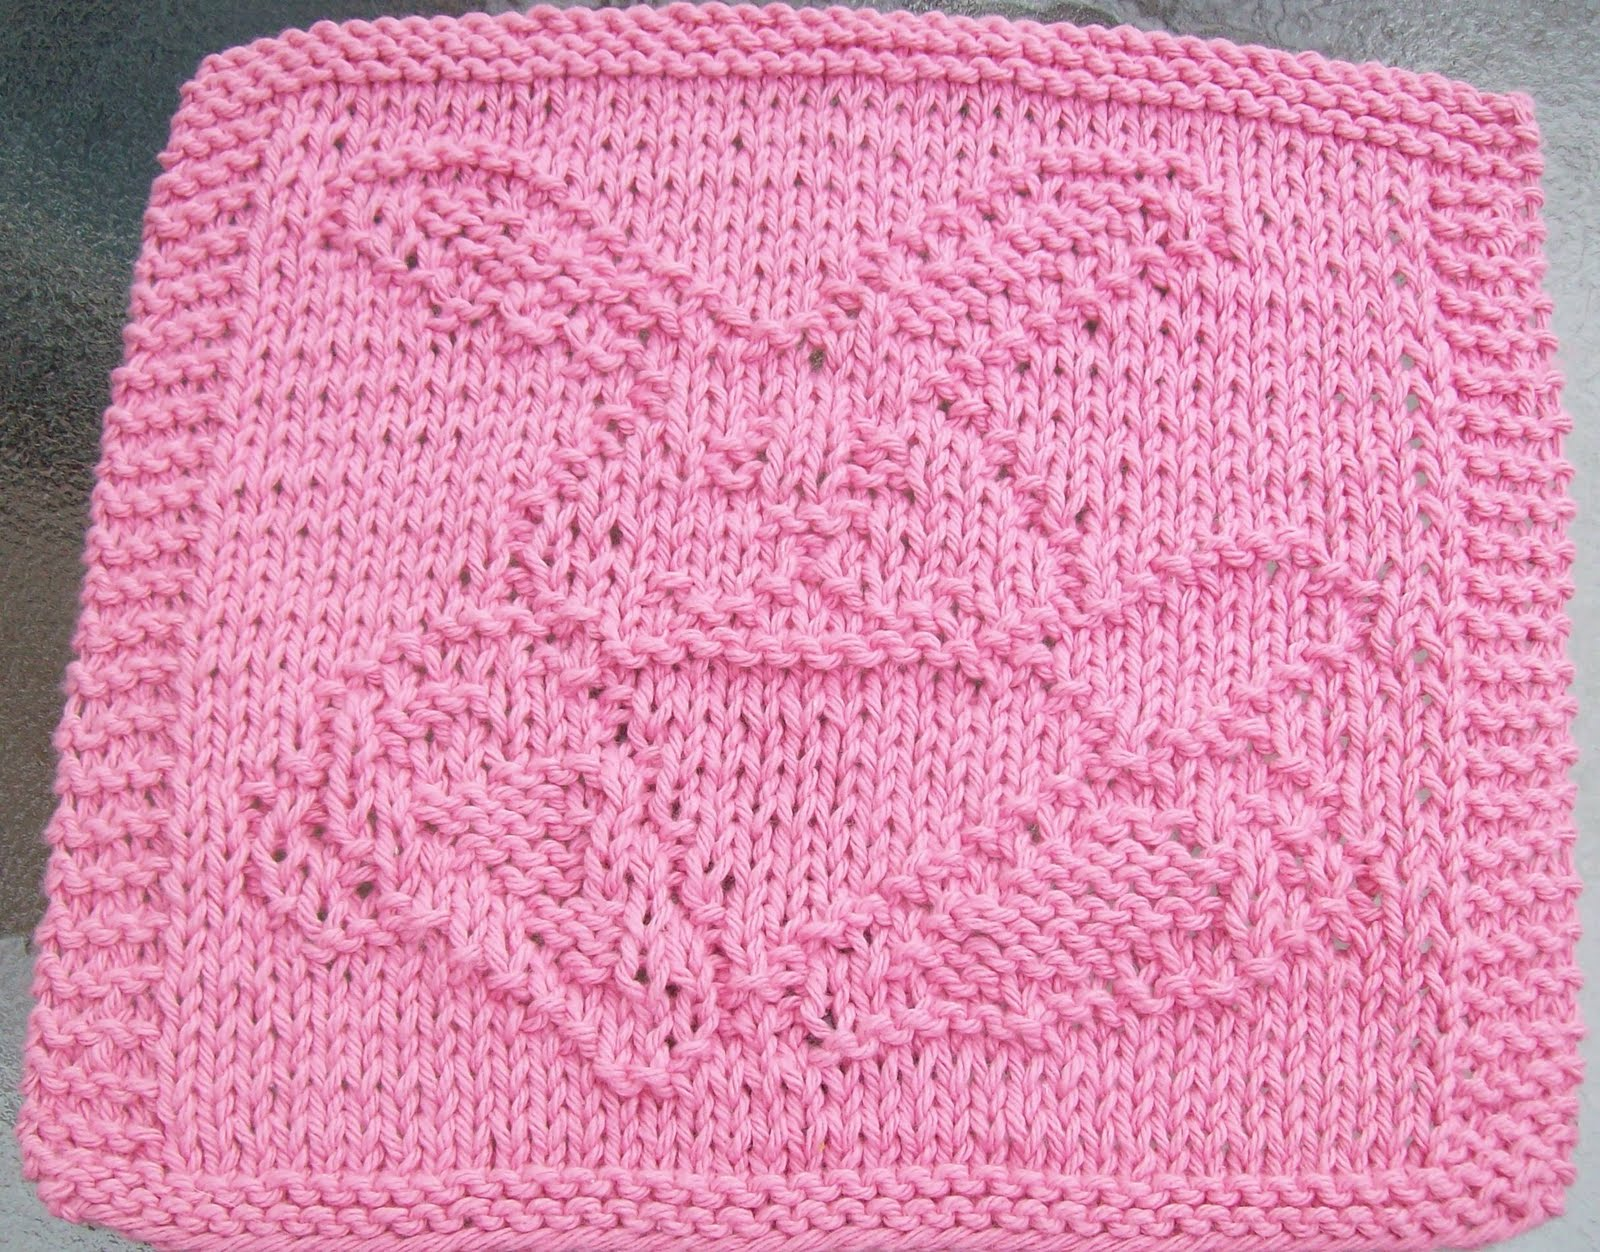 Knitted Dishcloth Patterns For Easter : DigKnitty Designs: Waving Bunny Knit Dishcloth Pattern